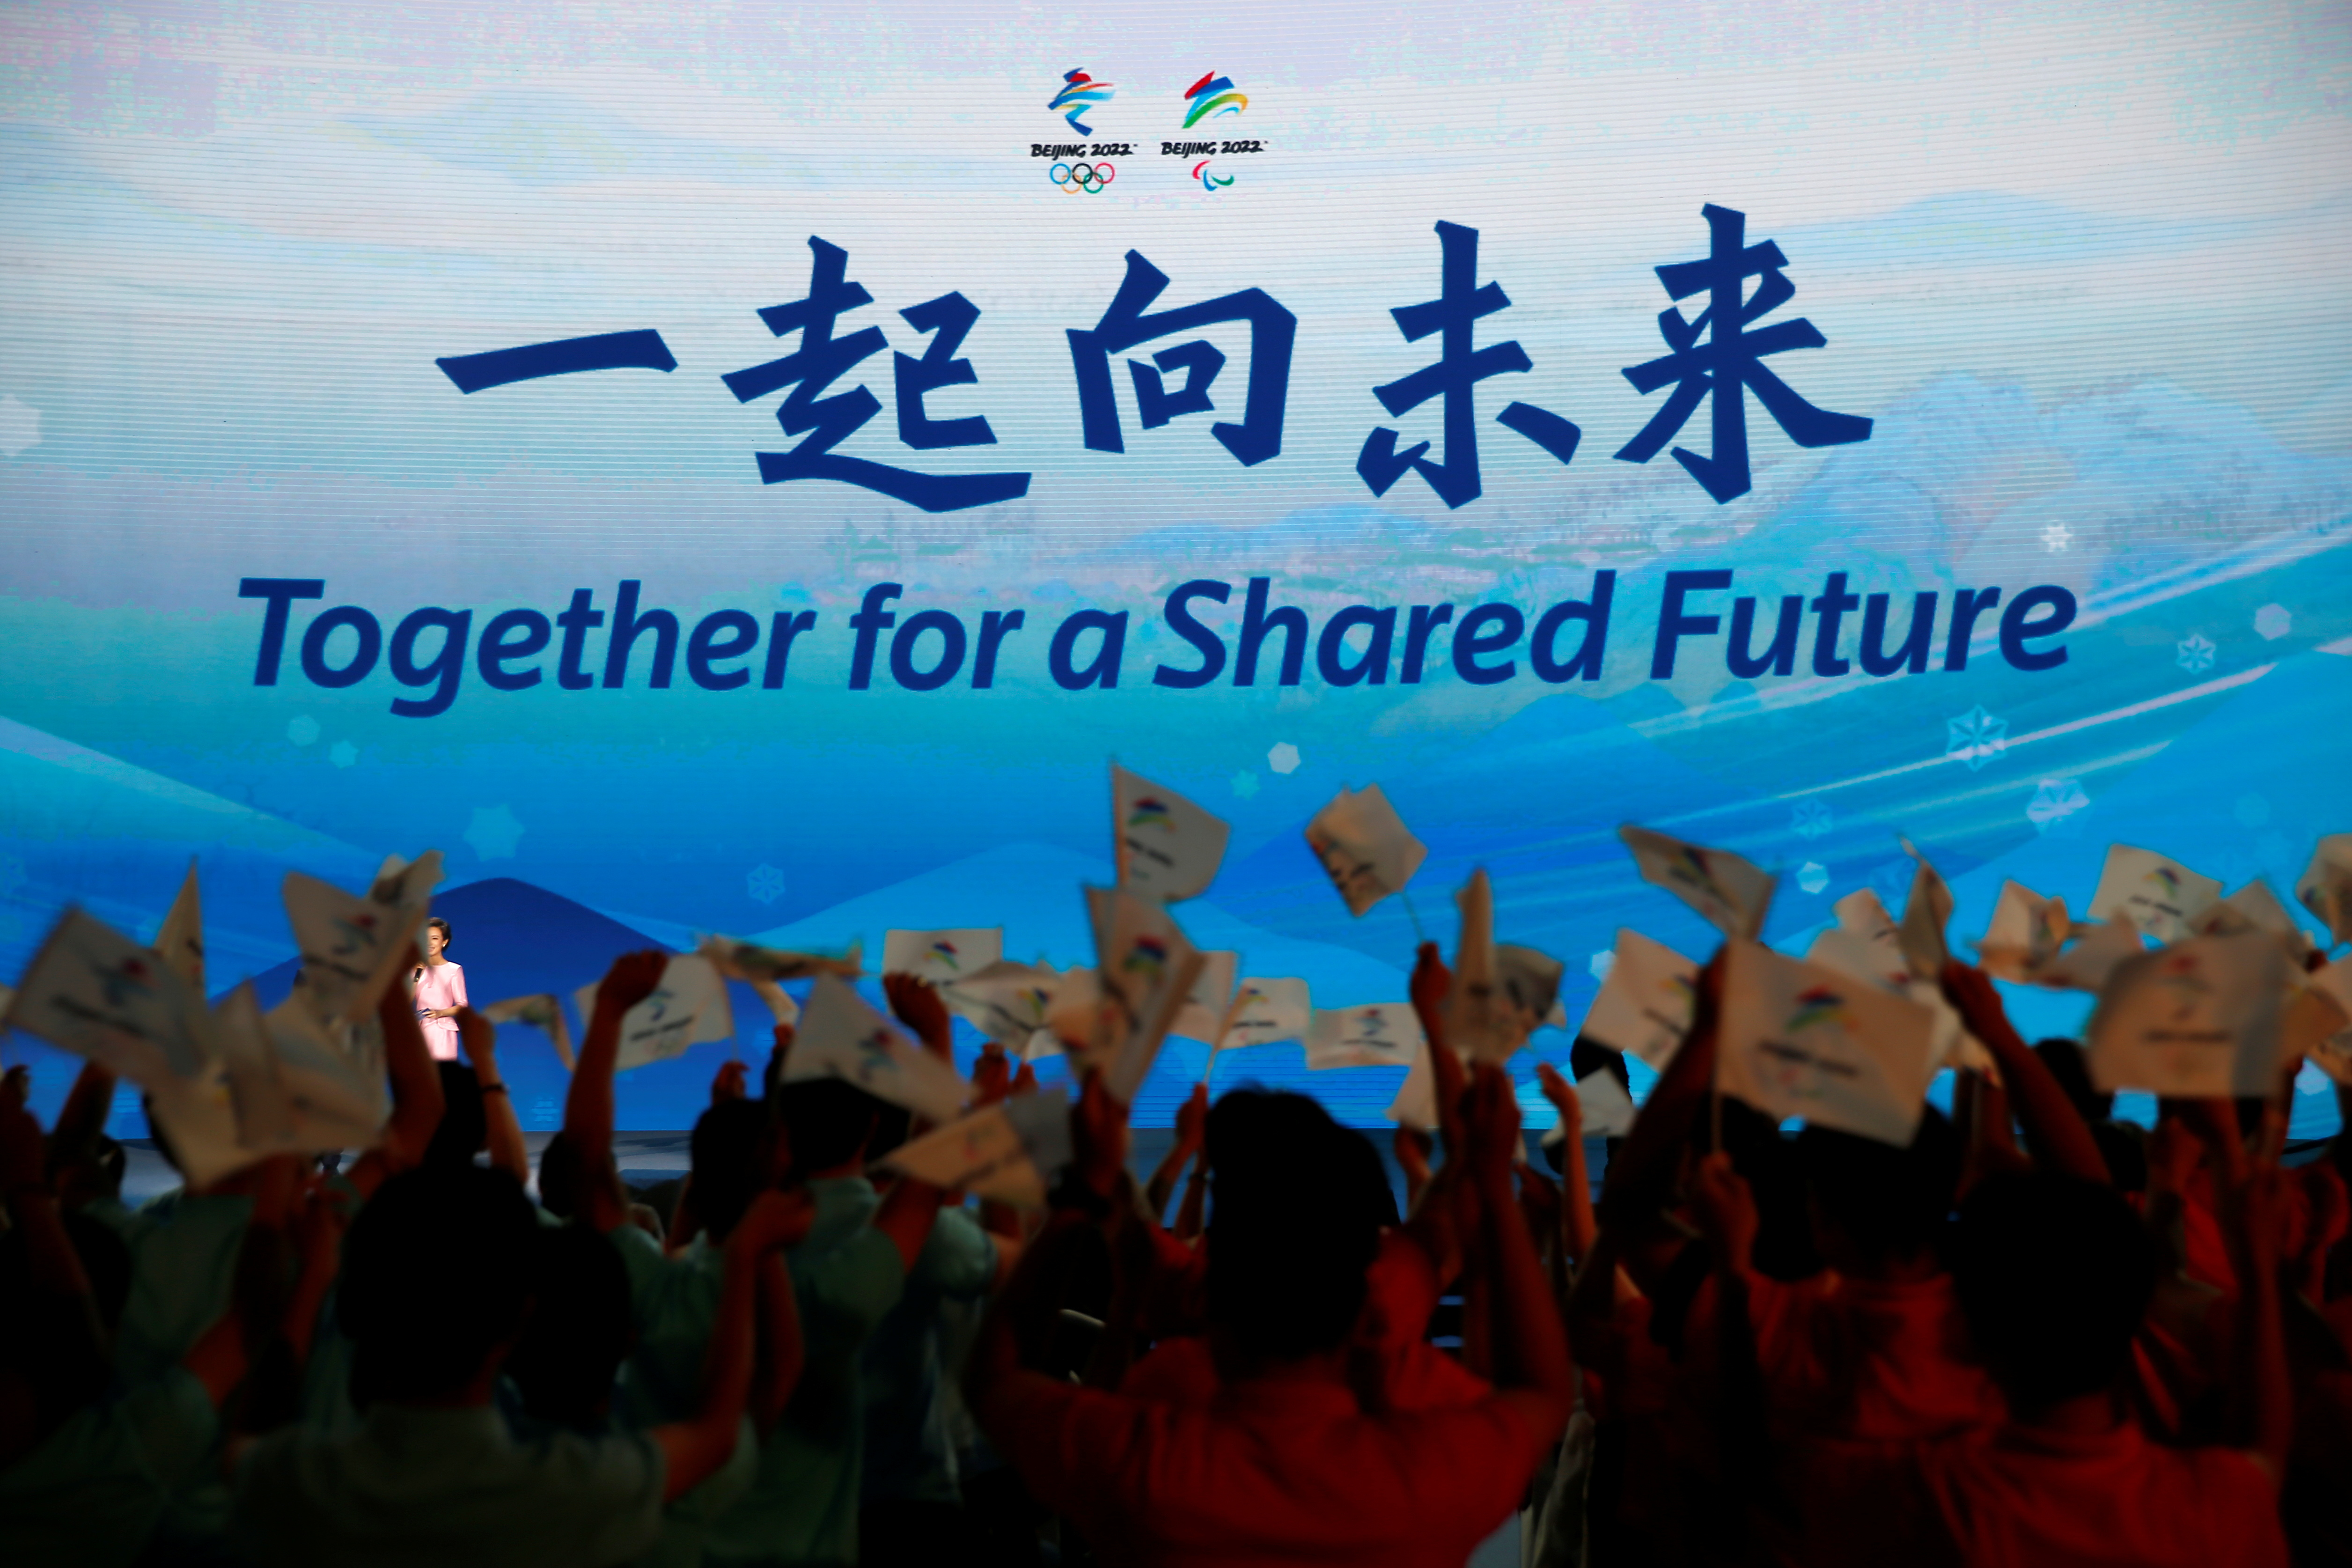 The slogan for the Beijing 2022 Winter Olympics,